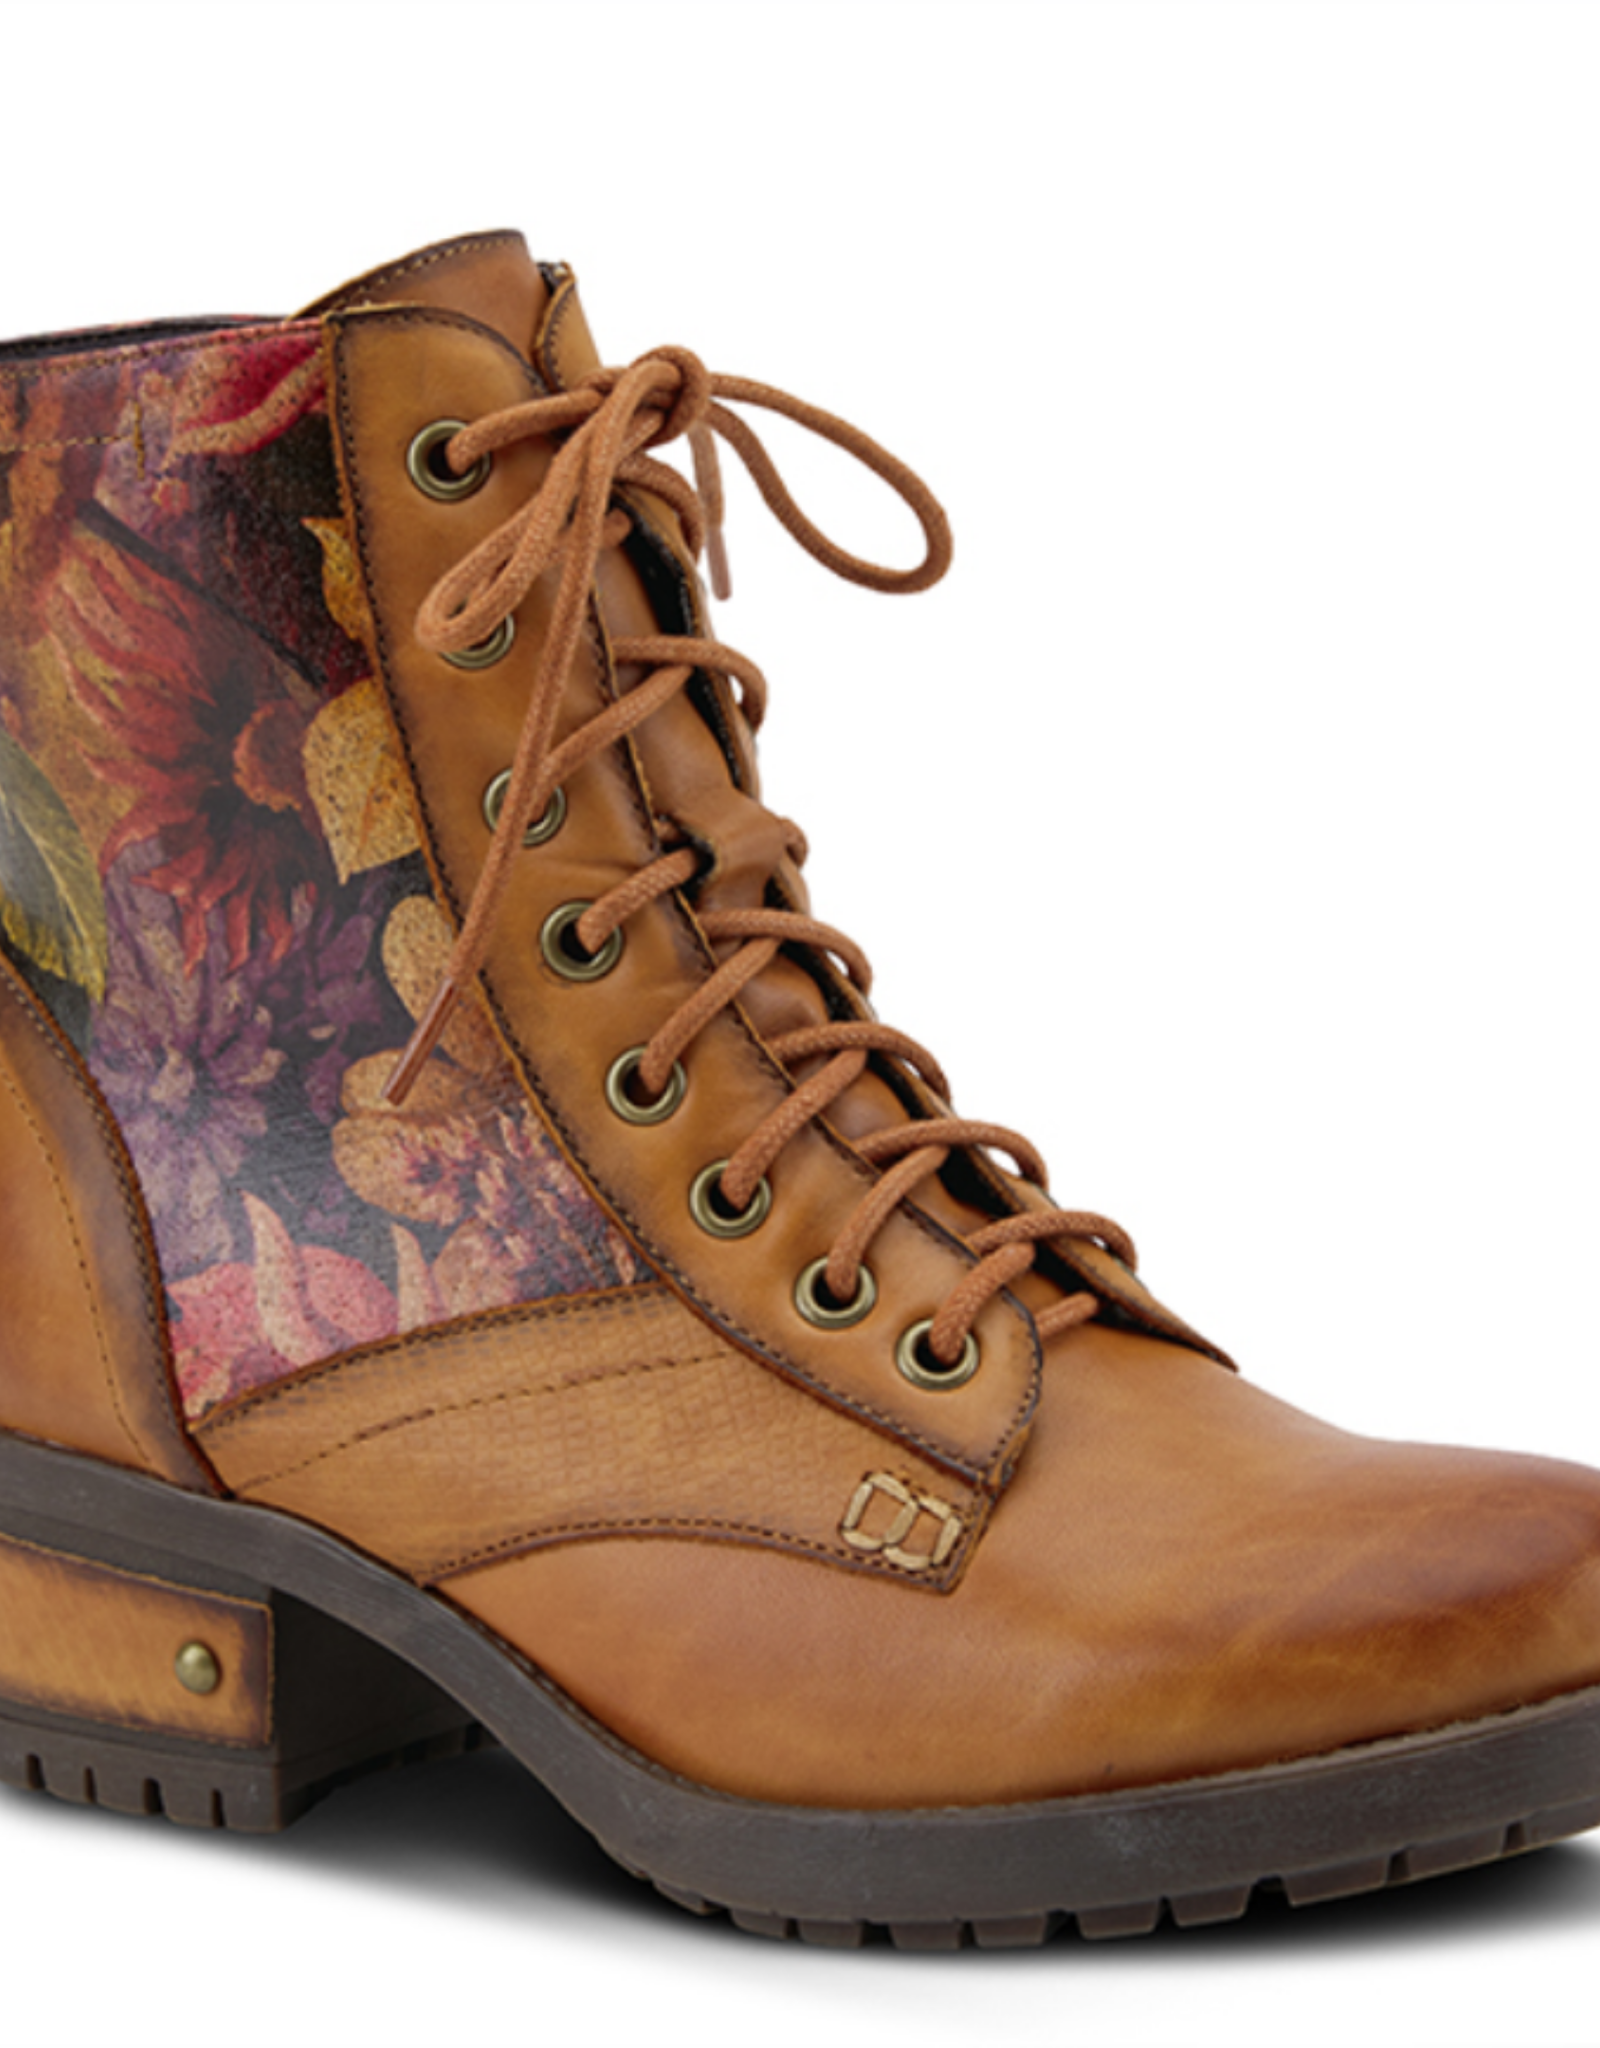 L'Artiste Marty Camel leather boot